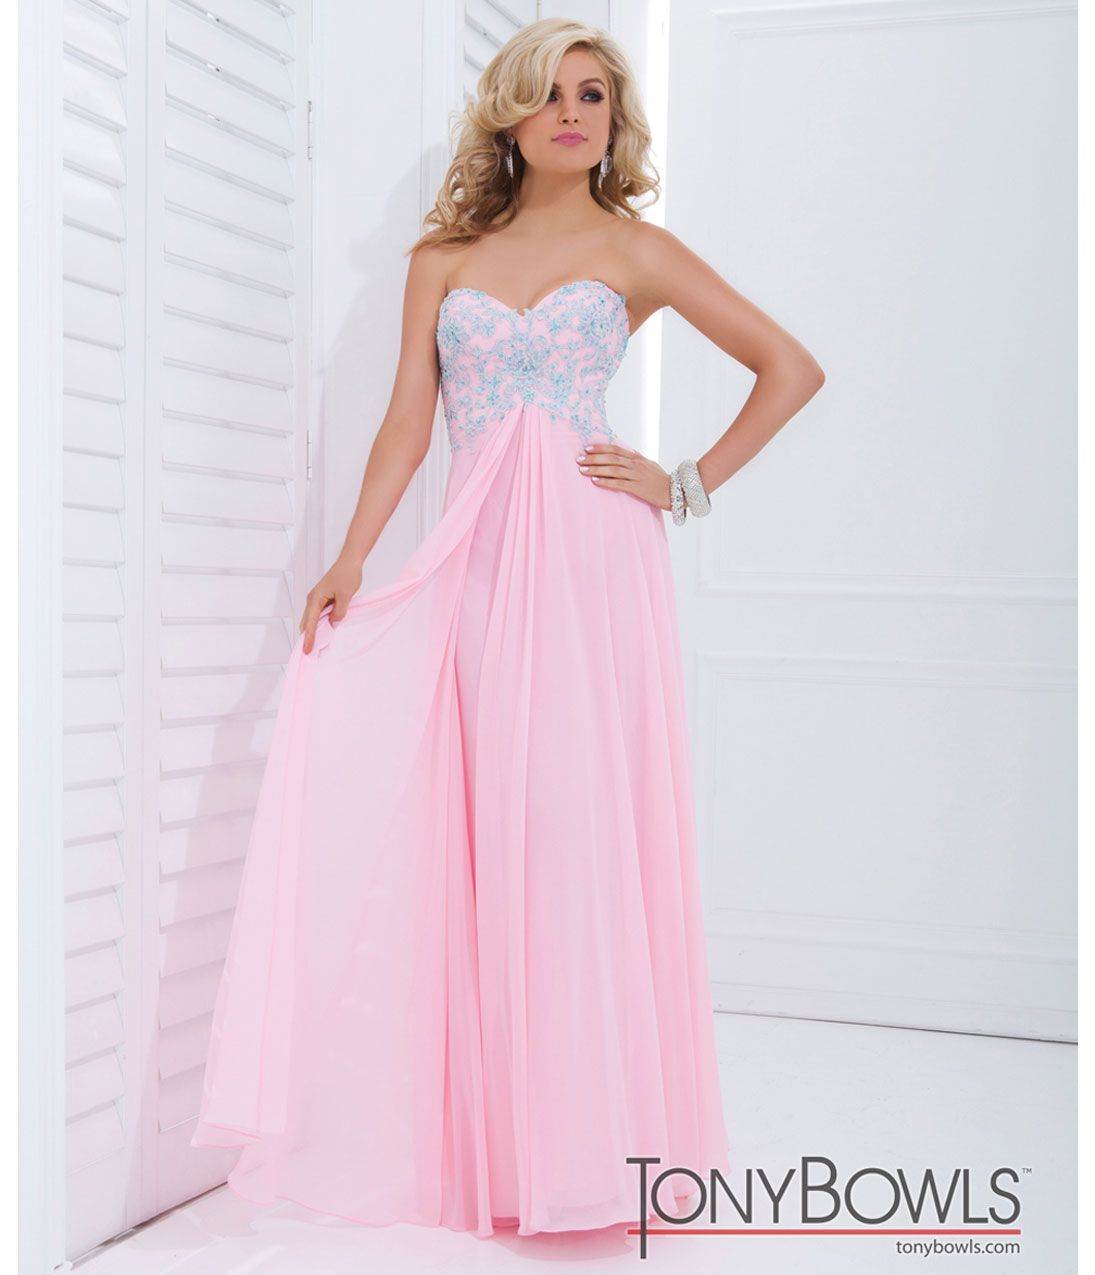 Unique Prom | Prom, Tony bowls and Floral lace